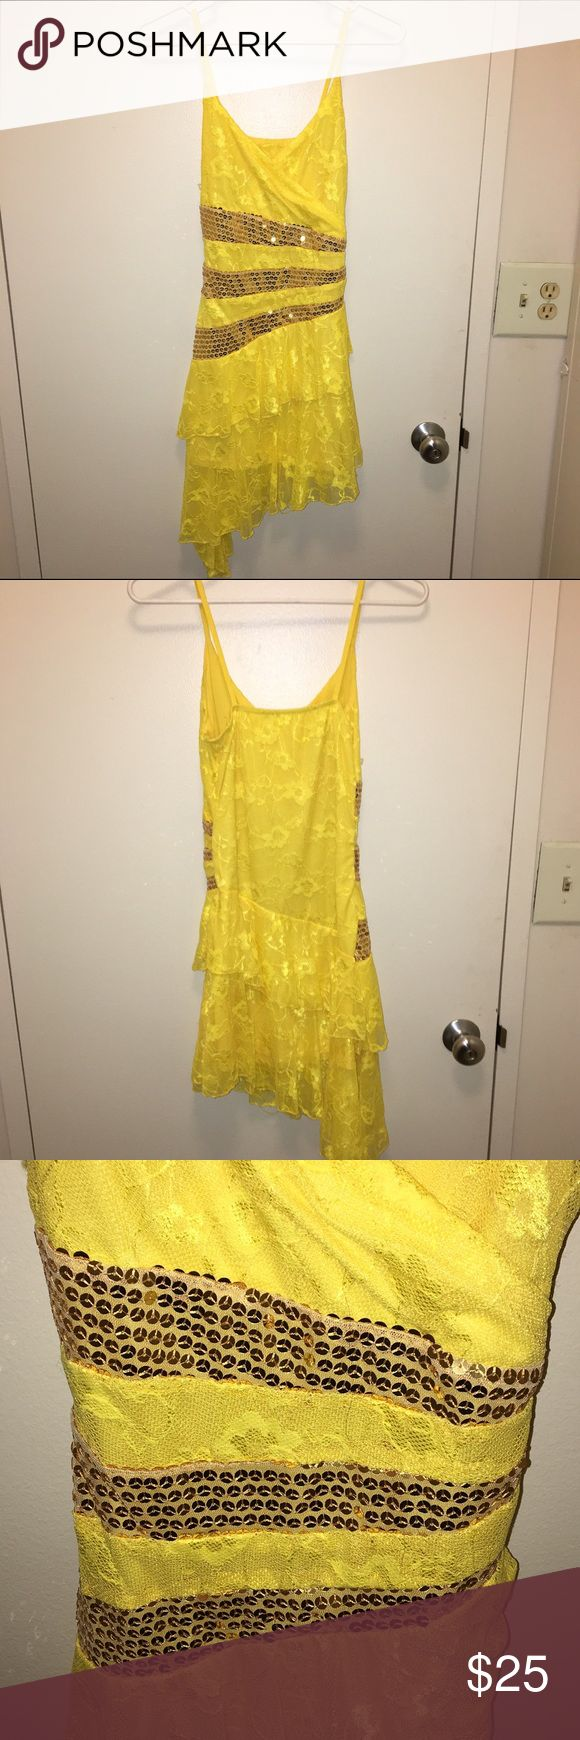 Yellow with gold sequins lace dancing dress disco Yellow lace disco dancing dress. Has gold sparkly sequin accents and a asymmetrical ruffle at the bottom. Spaghetti straps, very stretchy but sized small Dresses Asymmetrical